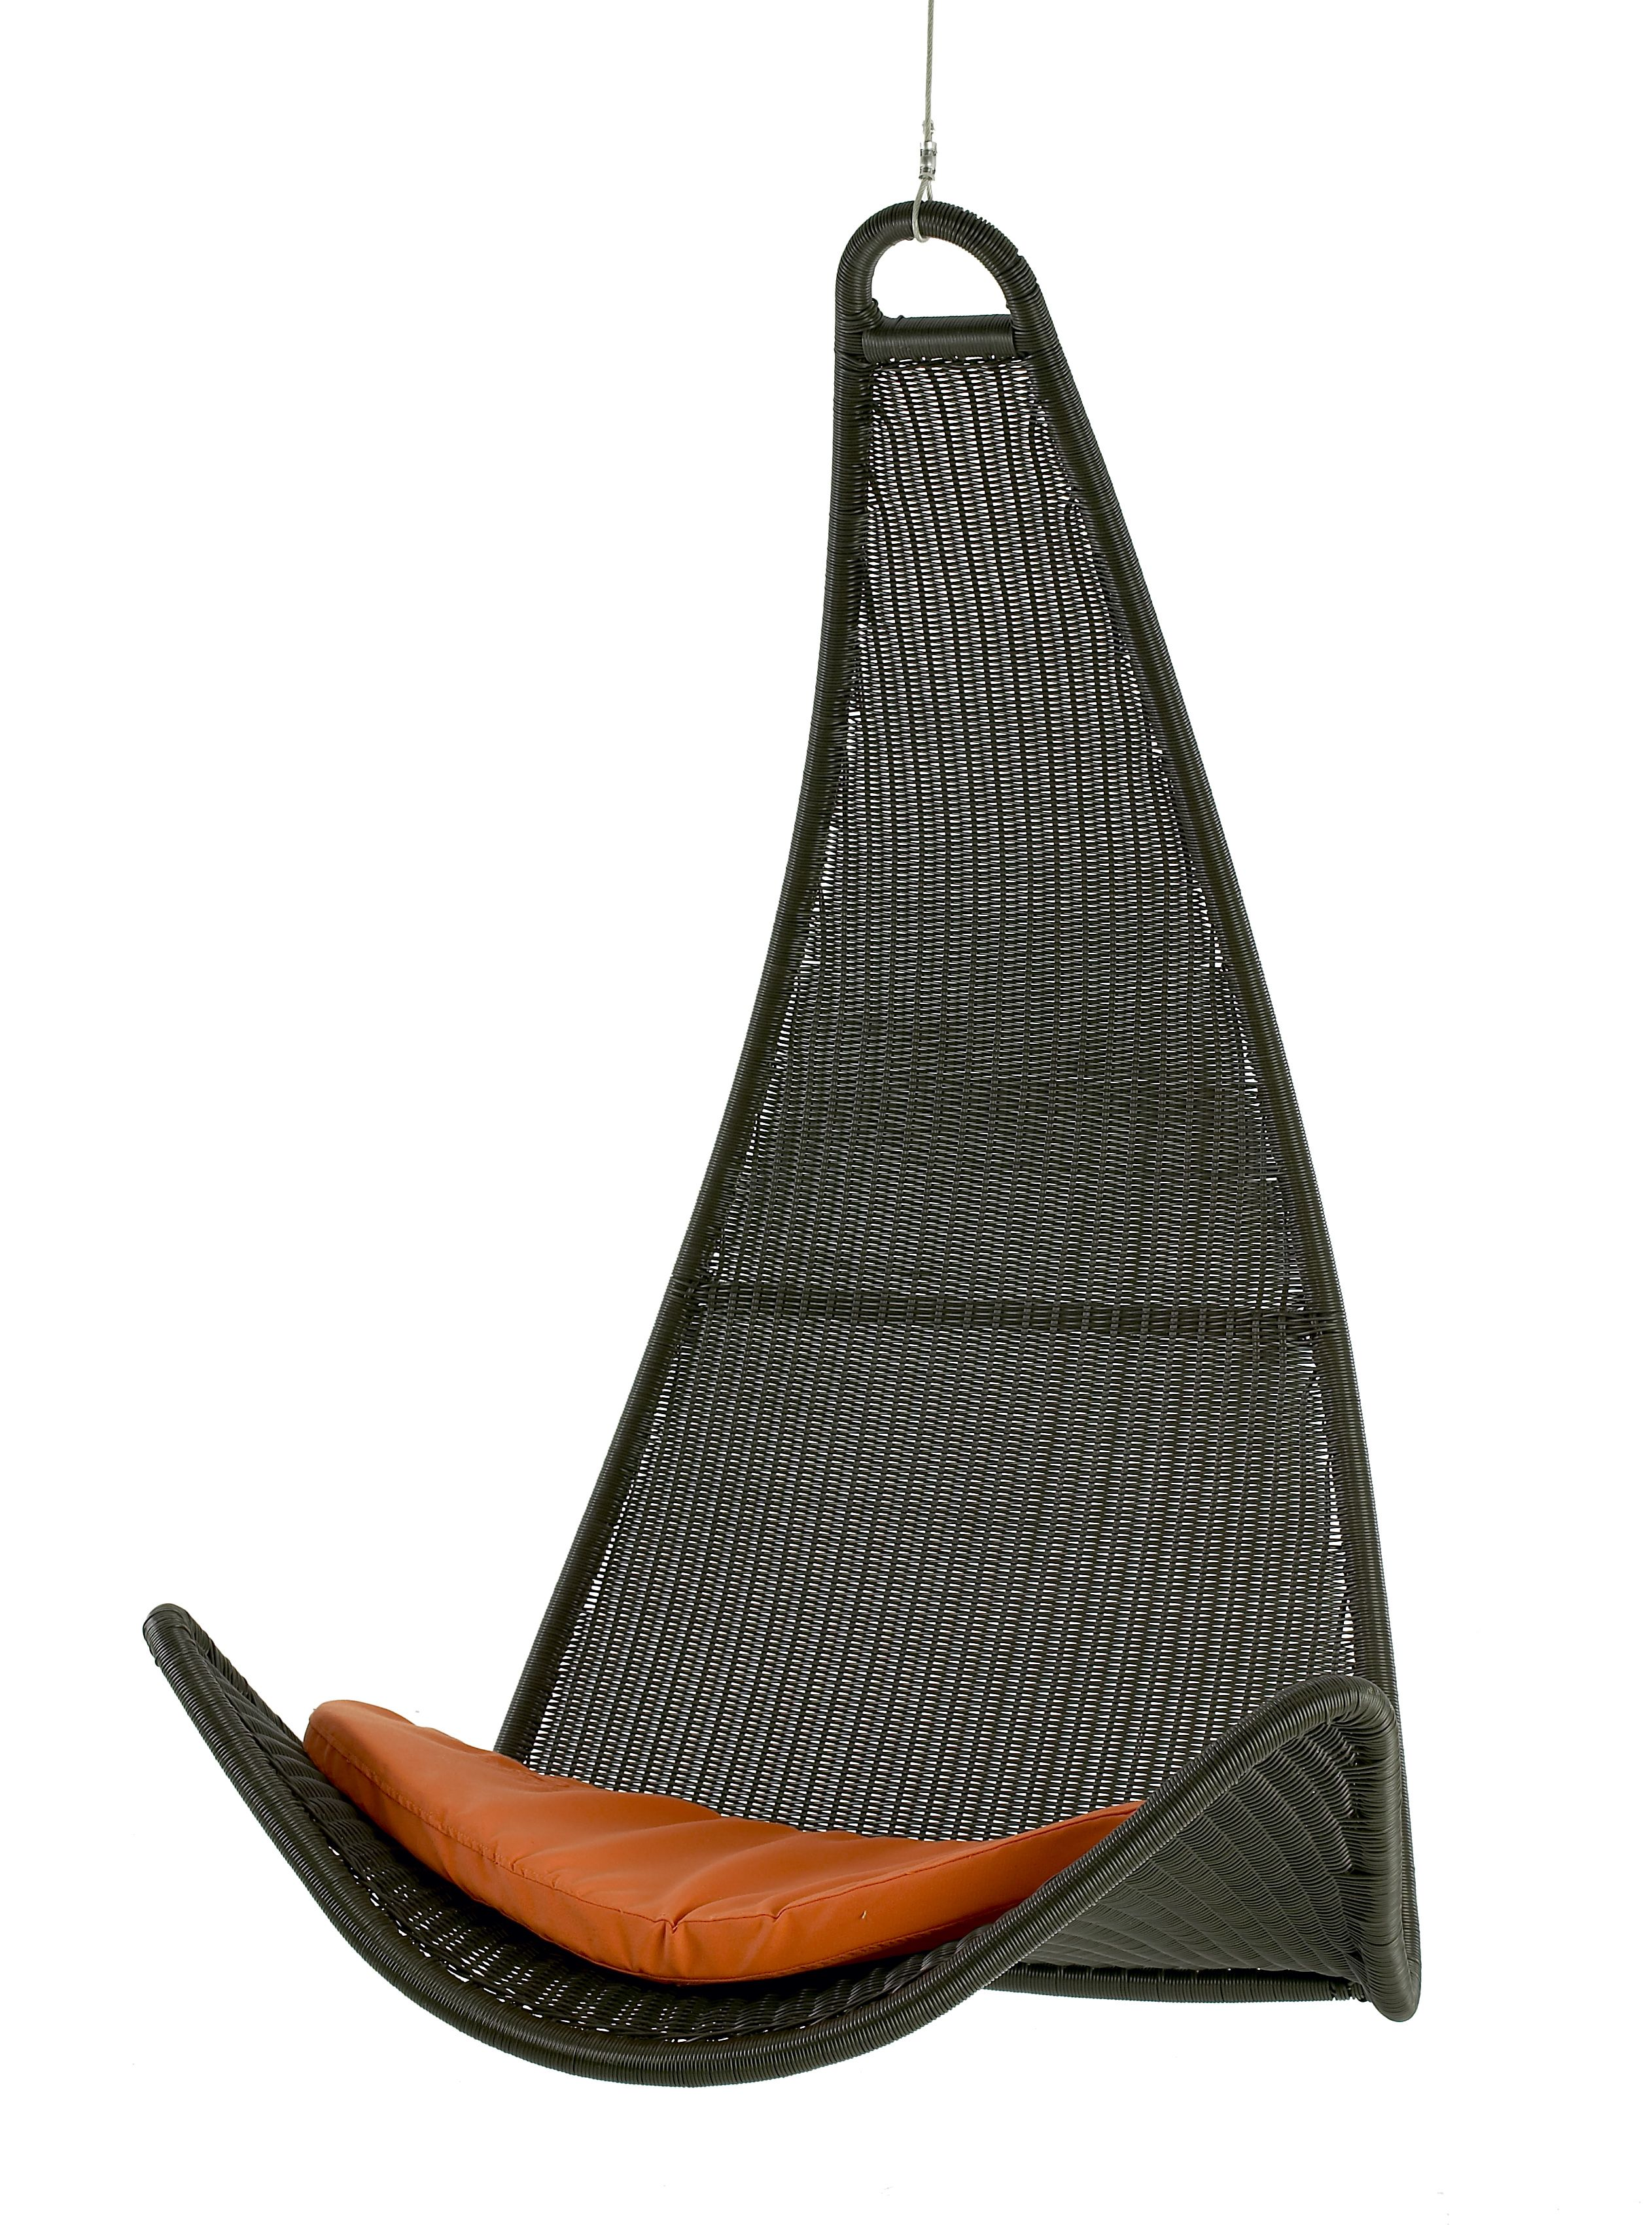 Exterior Hanging Chair Rain Cover Extraordinary Hanging